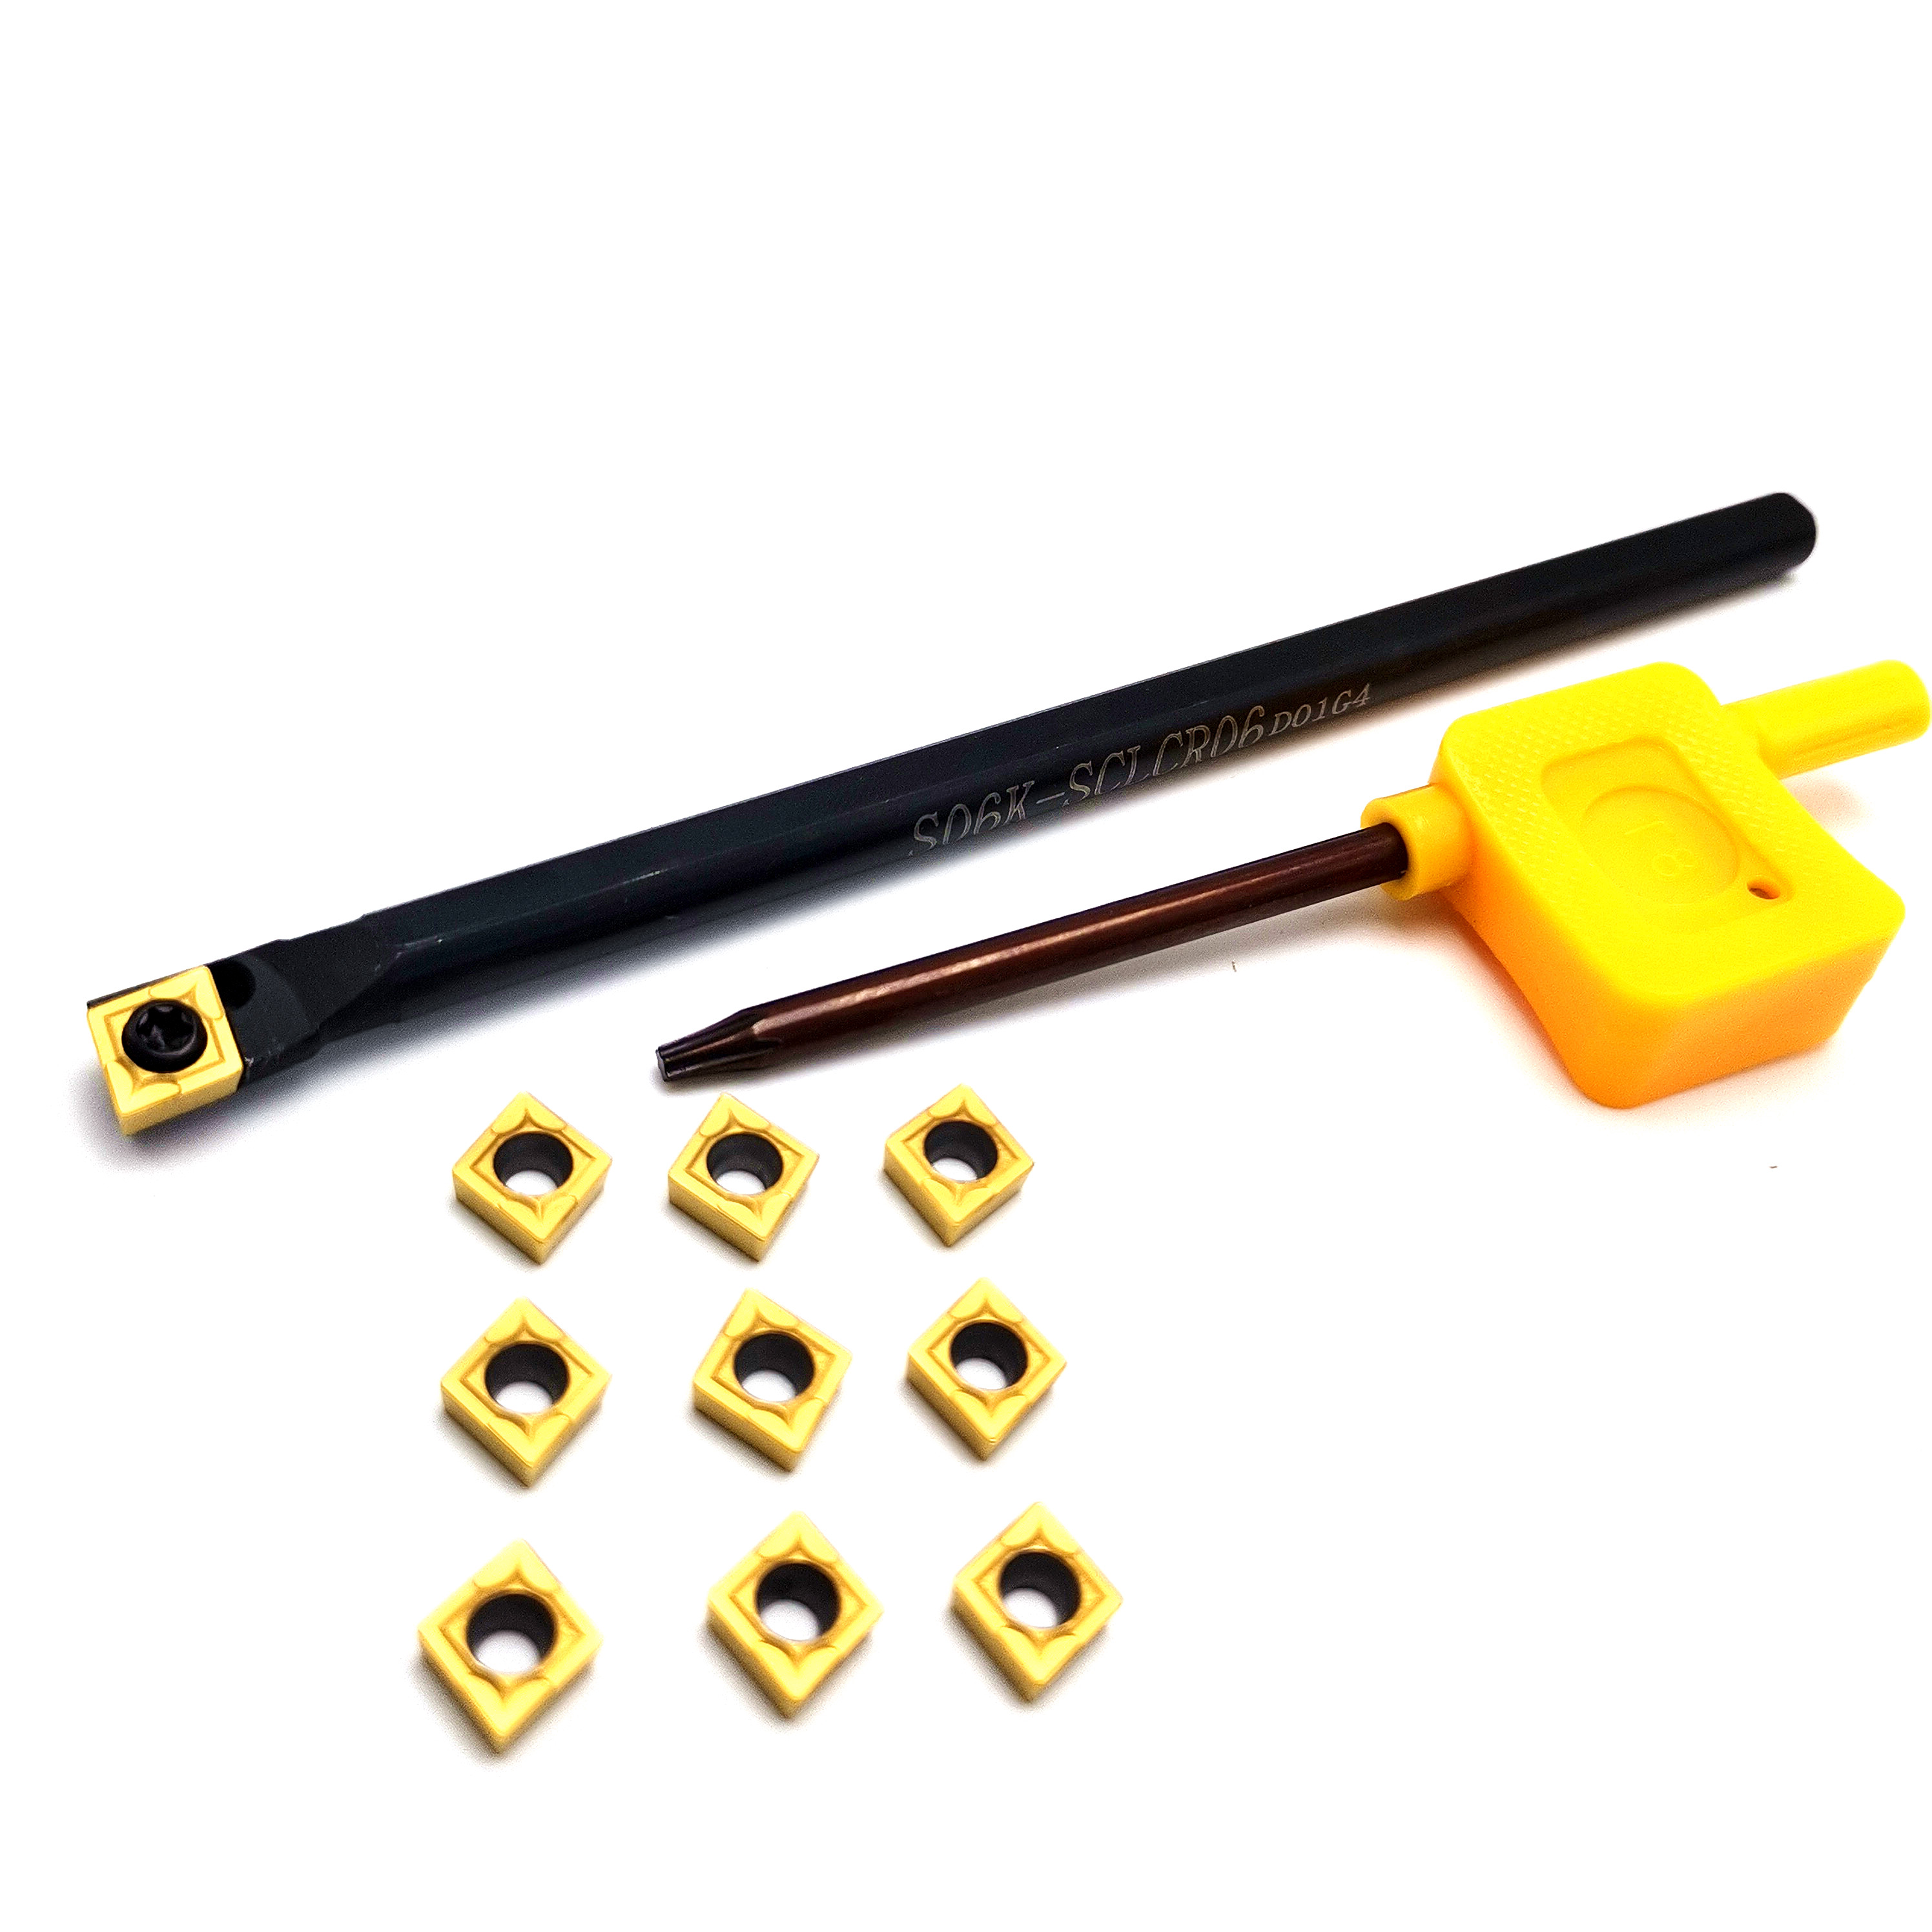 For TCMT110204 Turning Tool Bar S12M-STUCR11 12mm*150mm Holder Portable